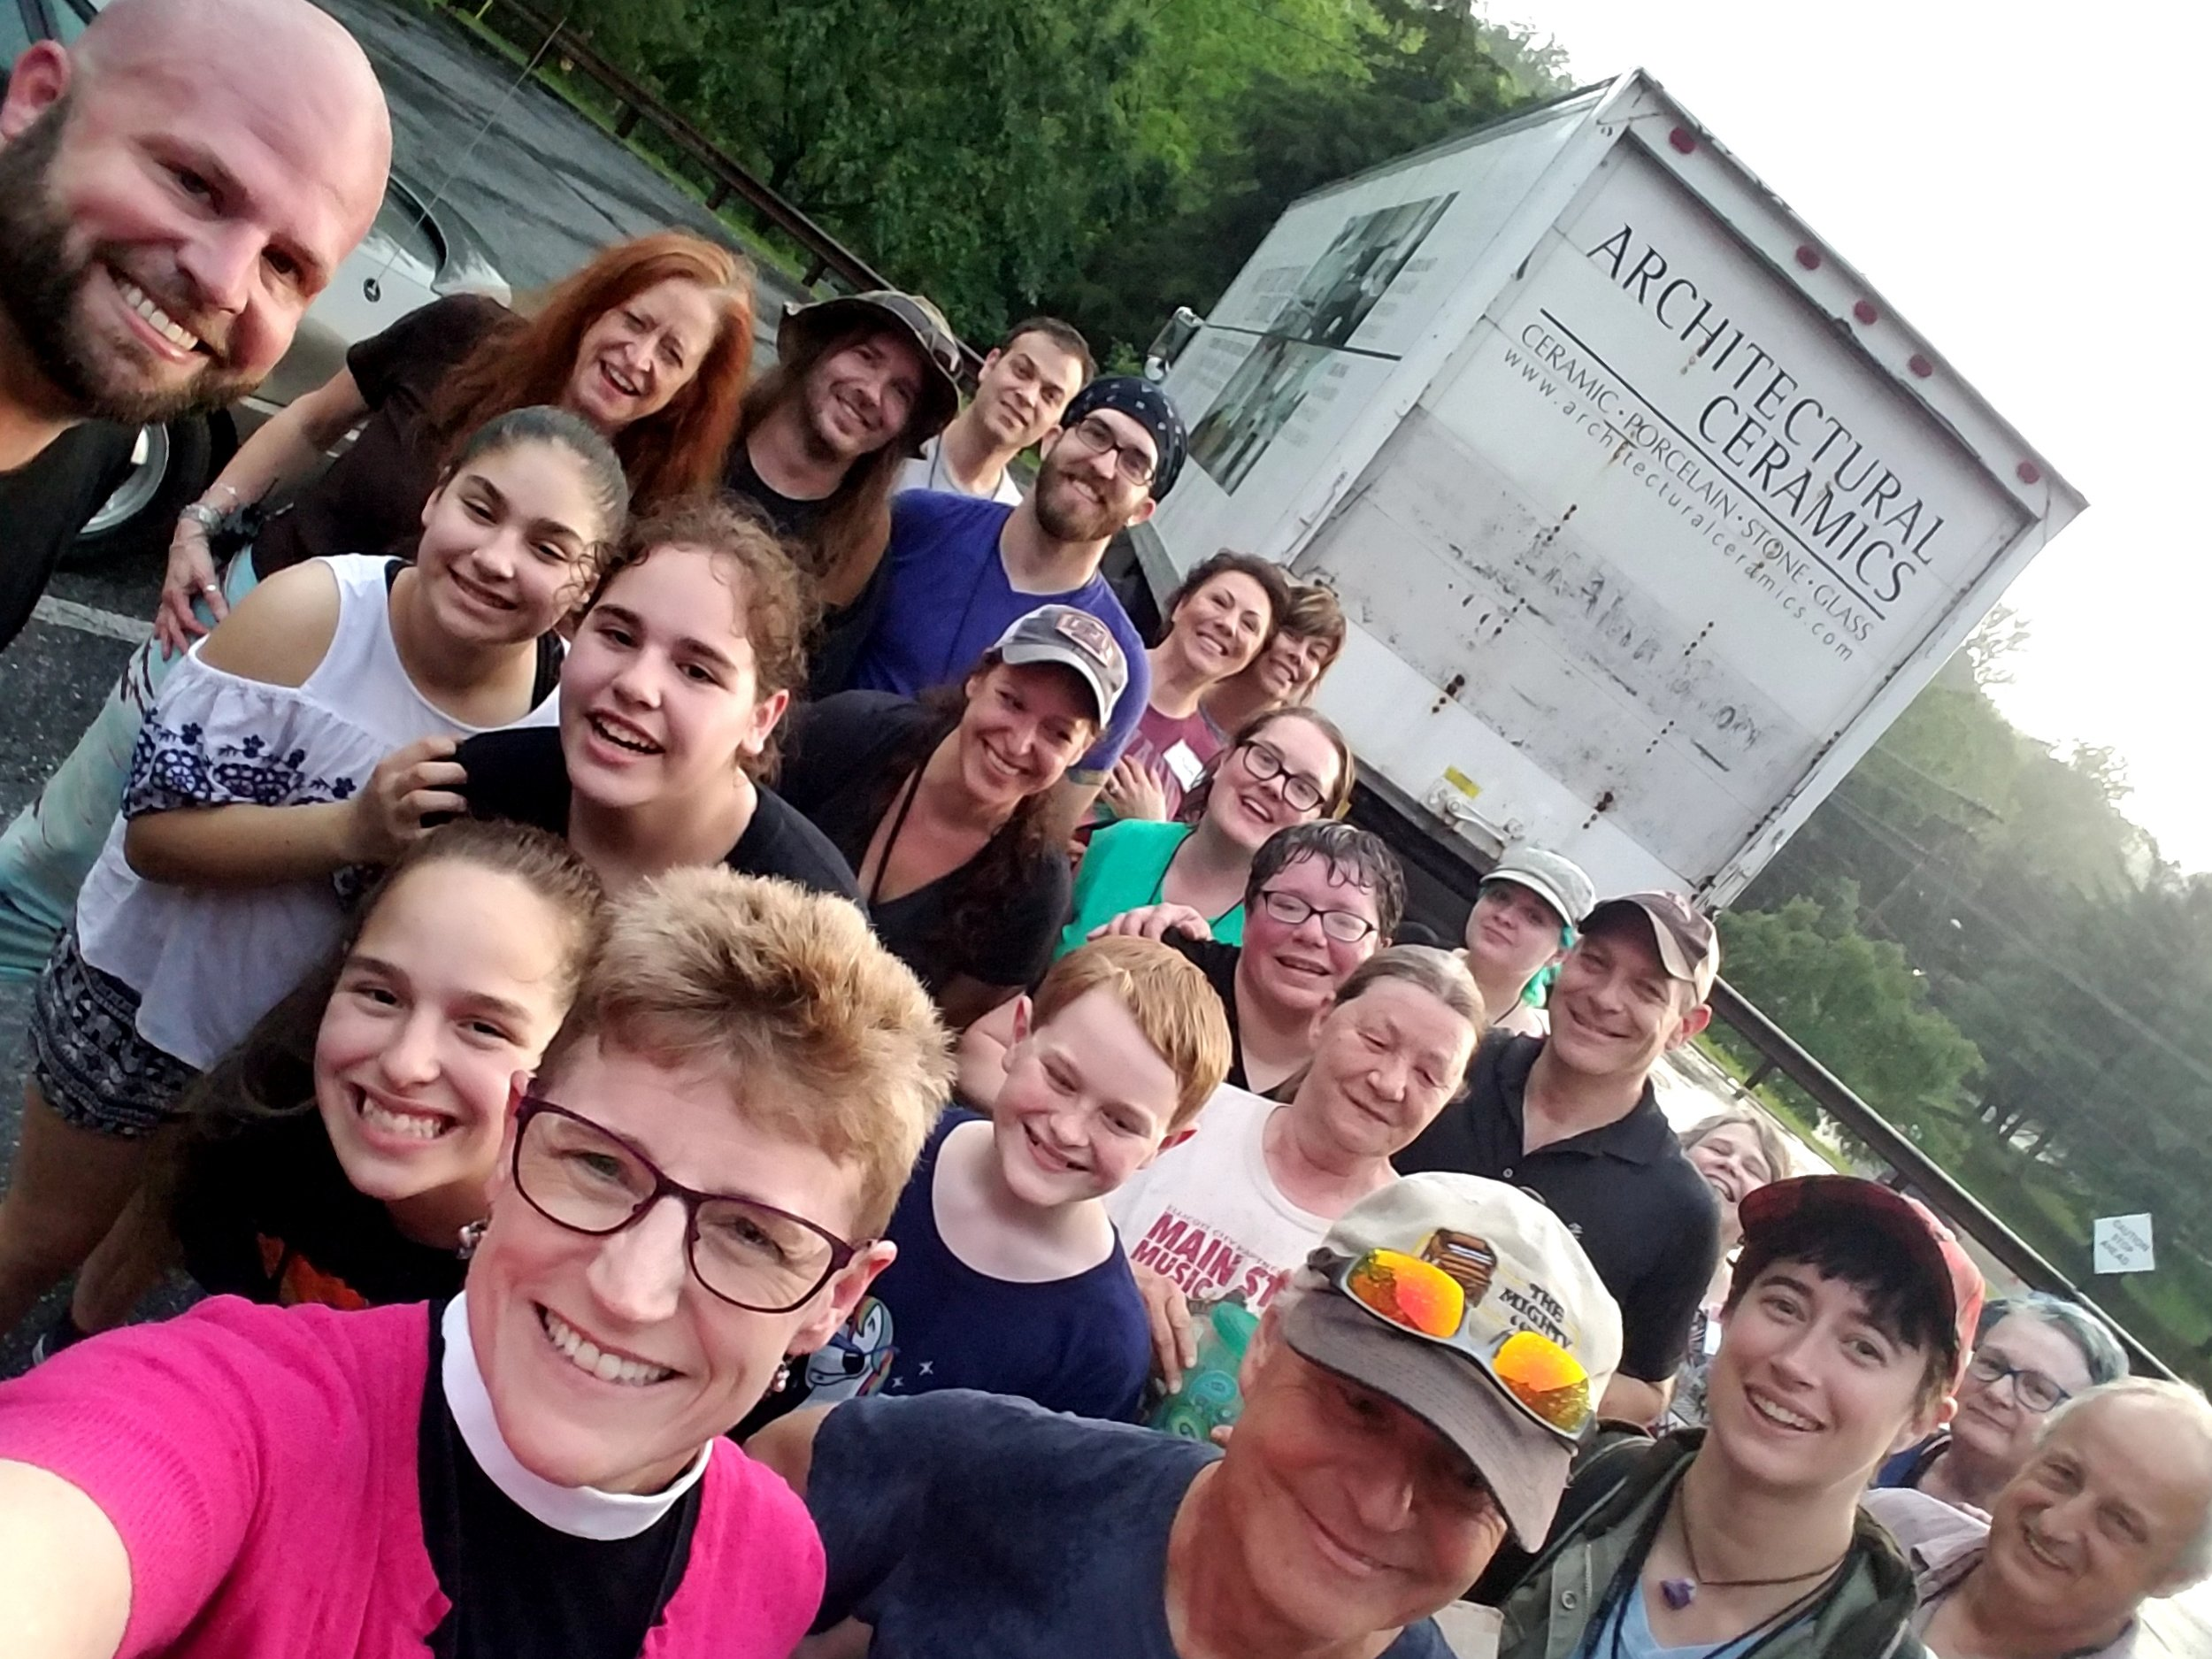 This is Chuck (upper left corner of picture). Chuck is from McLean Bible Church. Chuck drove a whole truckload of supplies in a raging thunderstorm to St. Peter's. Be like Chuck.